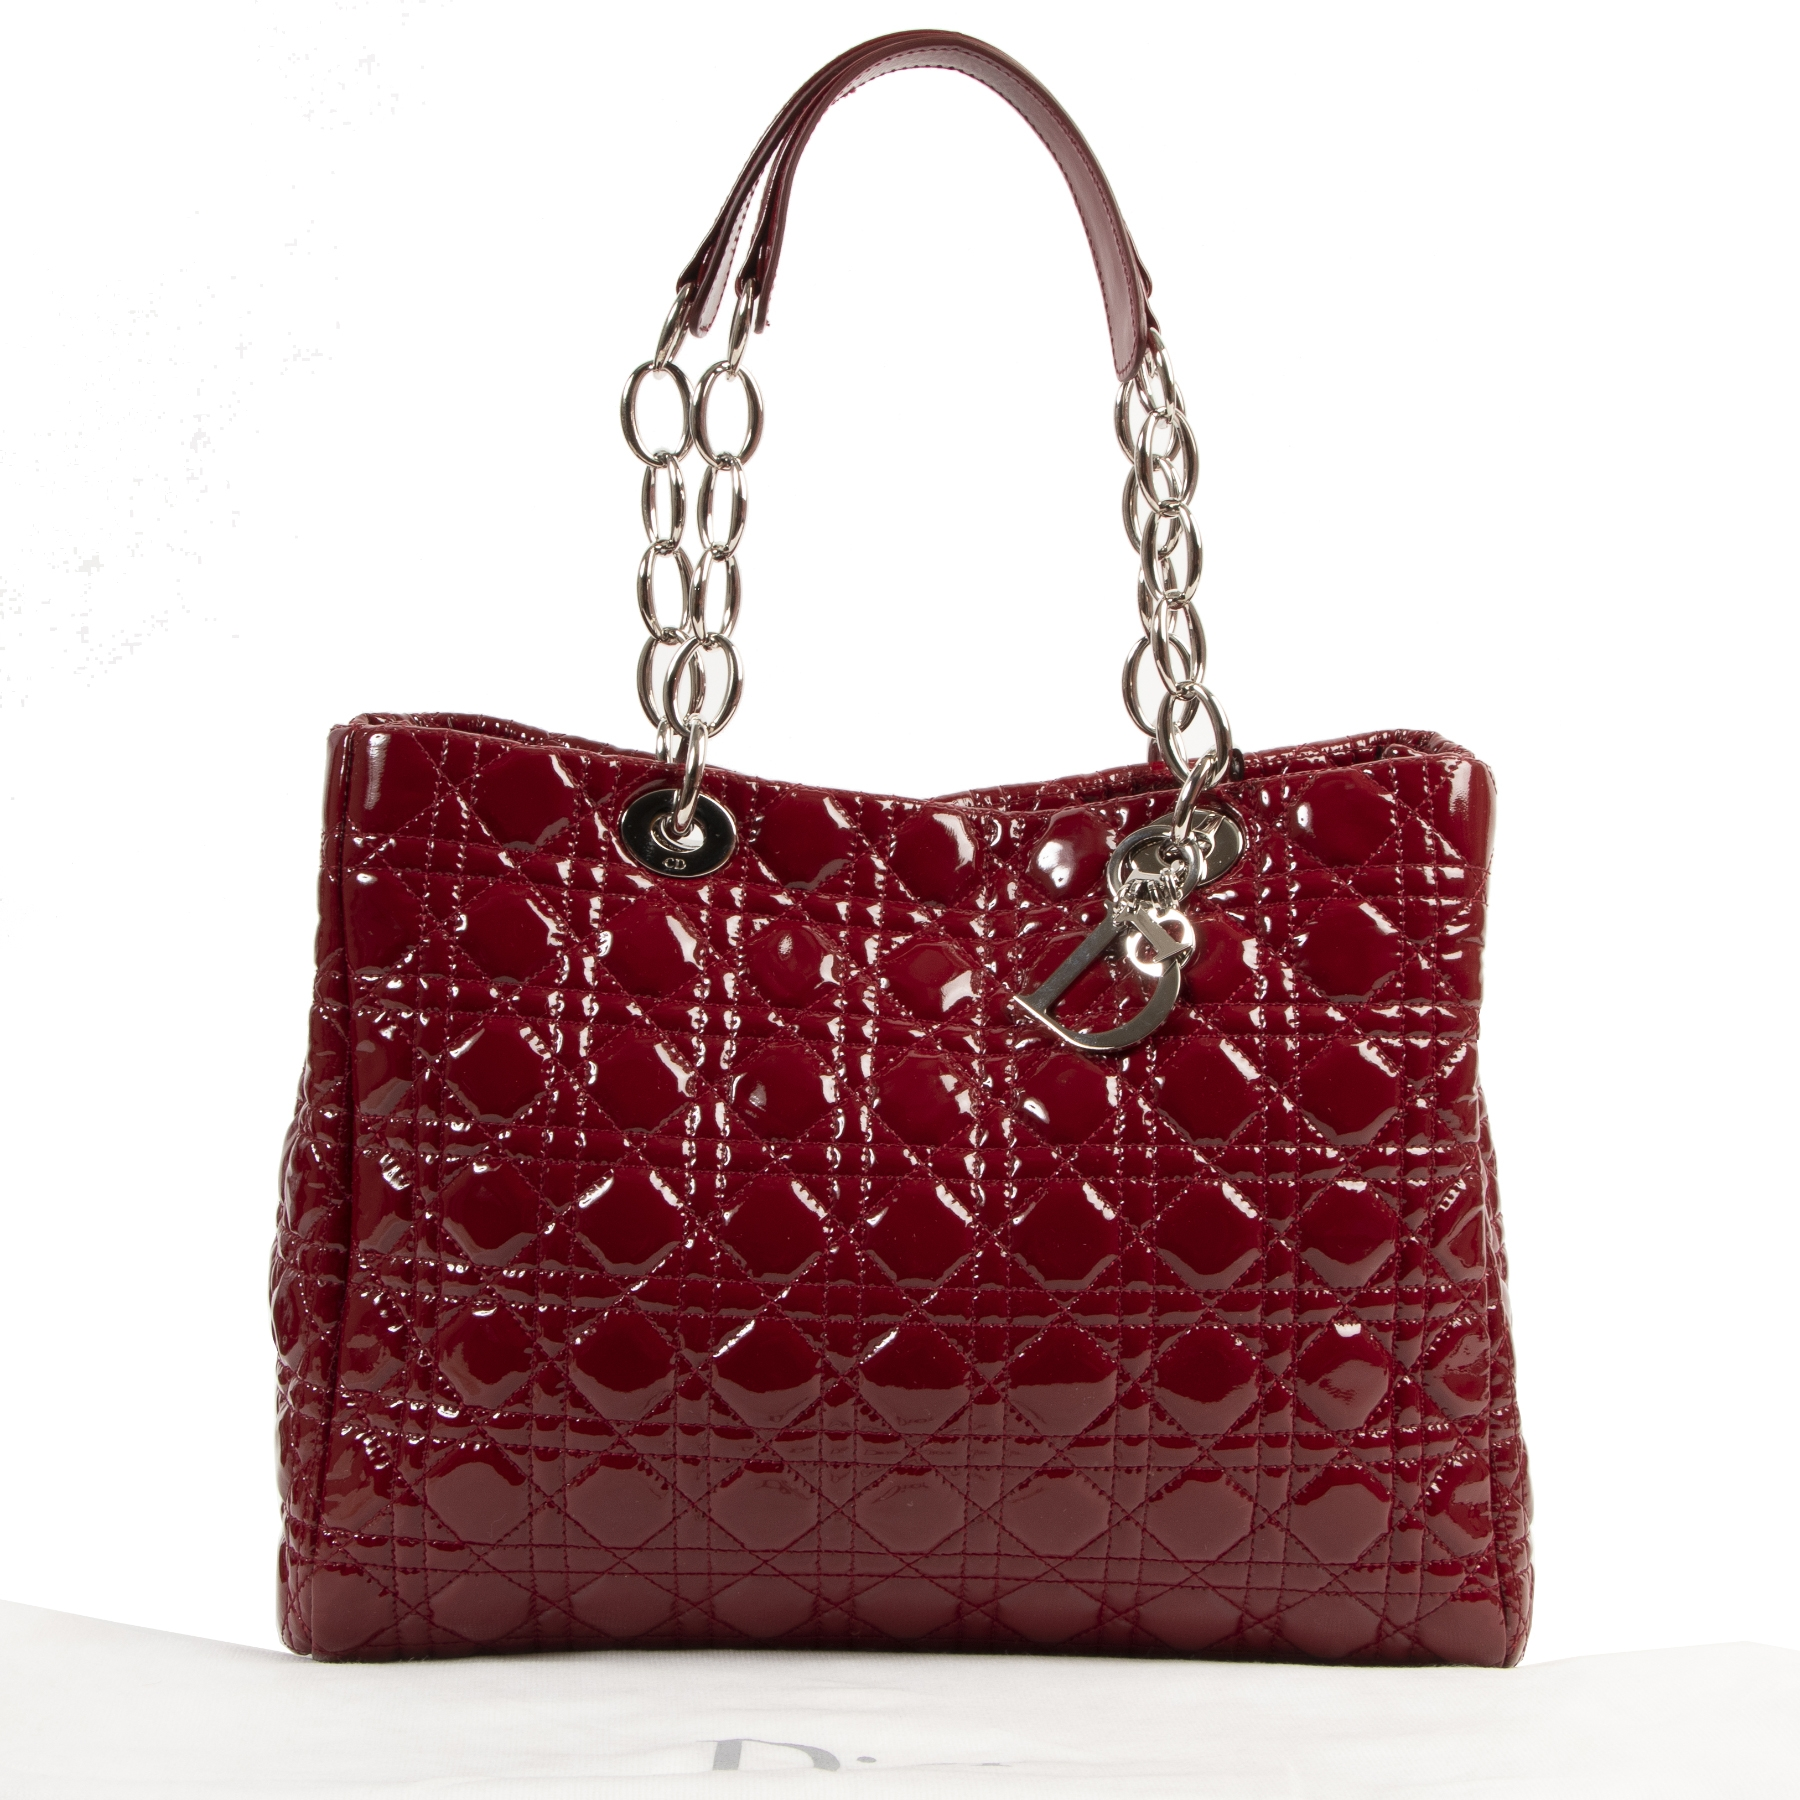 Dior Burgundy Patent Cannage Tote